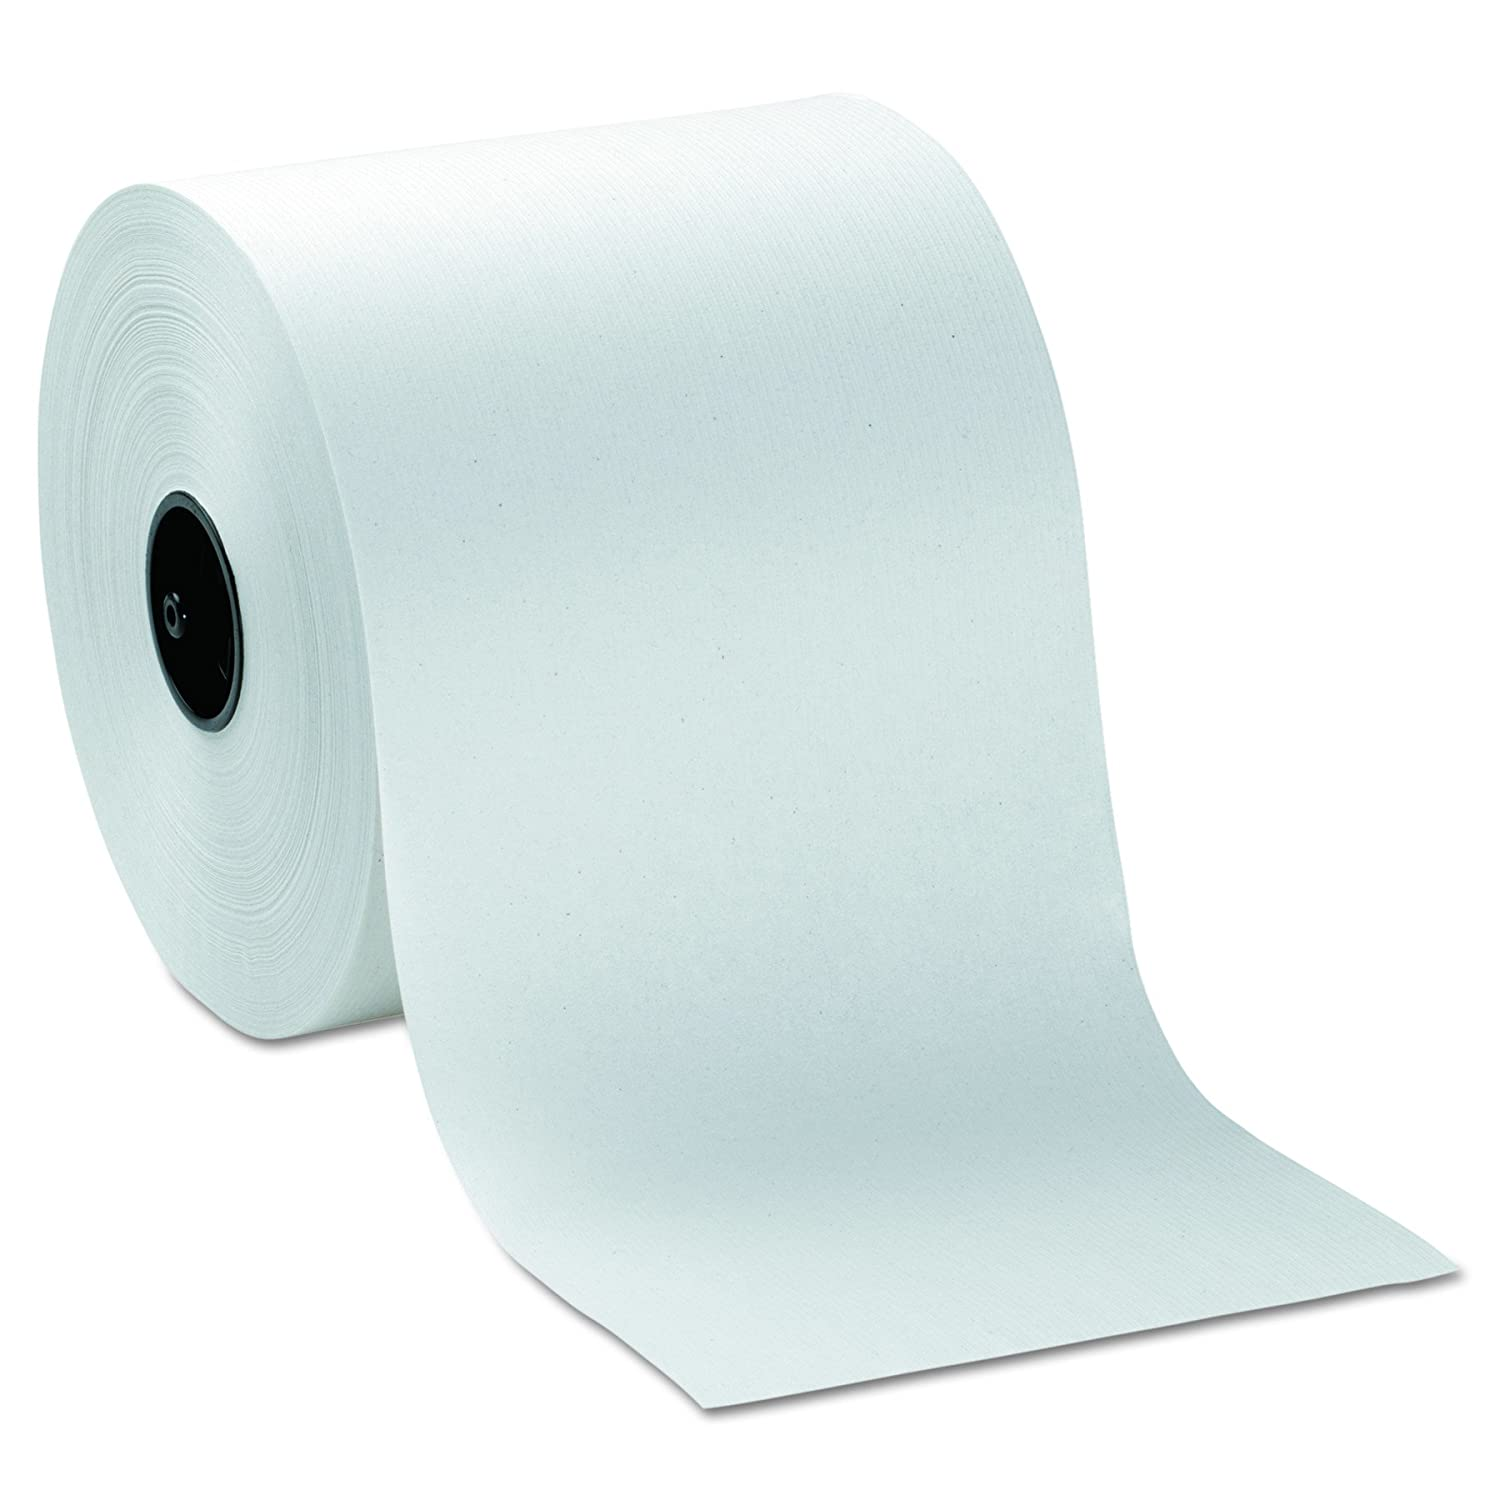 Georgia-Pacific SofPull 26910 for Auto White Recycled Hardwound Roll Paper Towel (Case of 6 Rolls) GEP26910